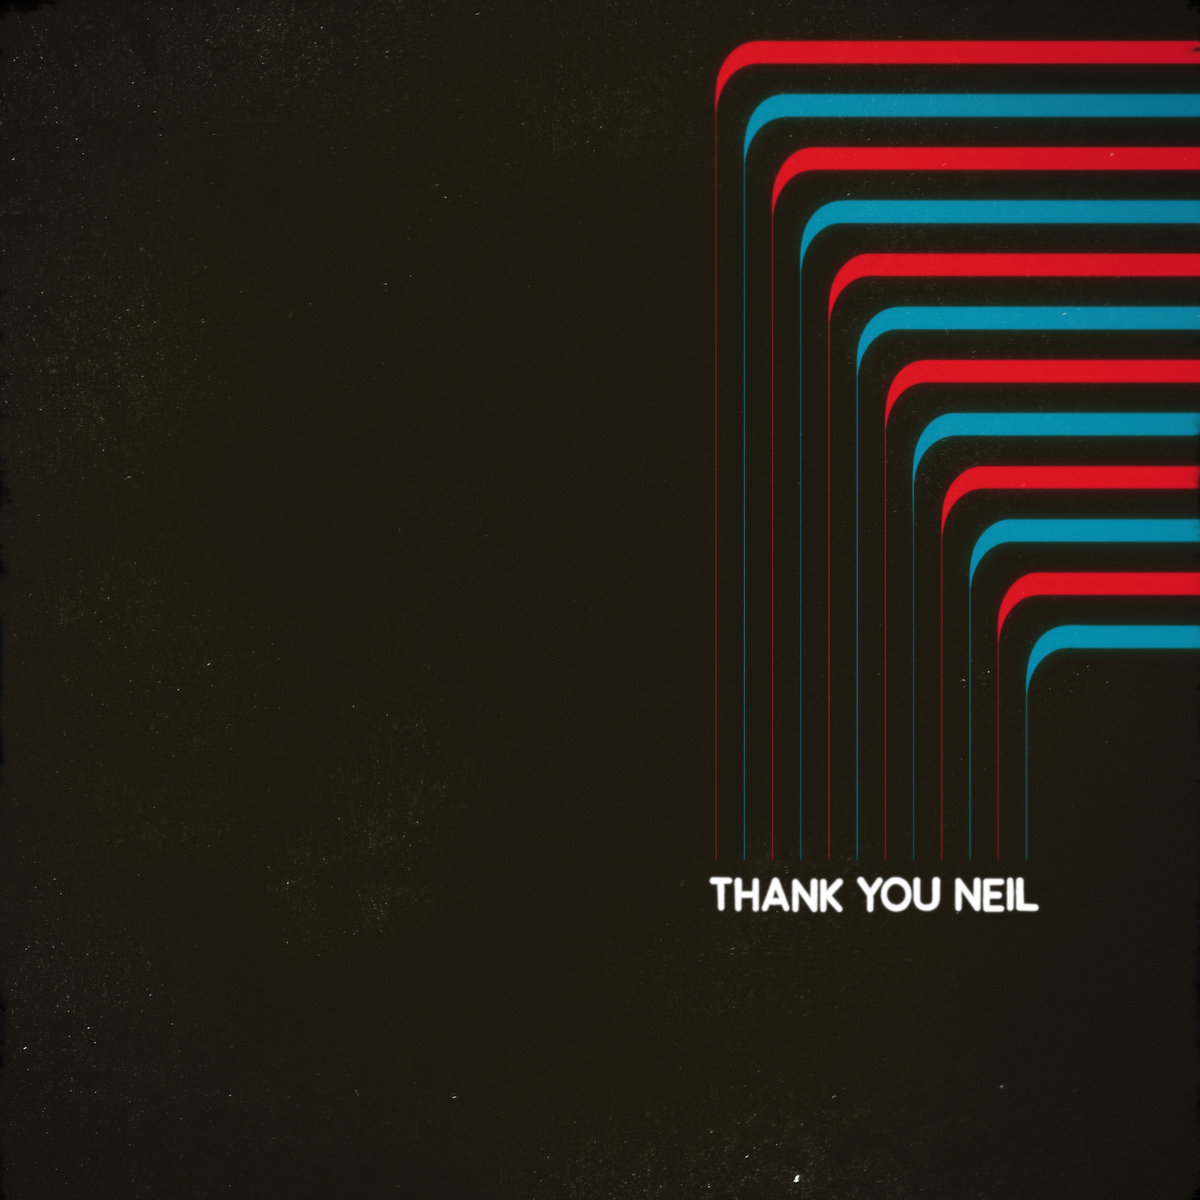 Dumbo Gets Mad - Haters Paradise @ 'Thank You Neil' album (alternative, los angeles)